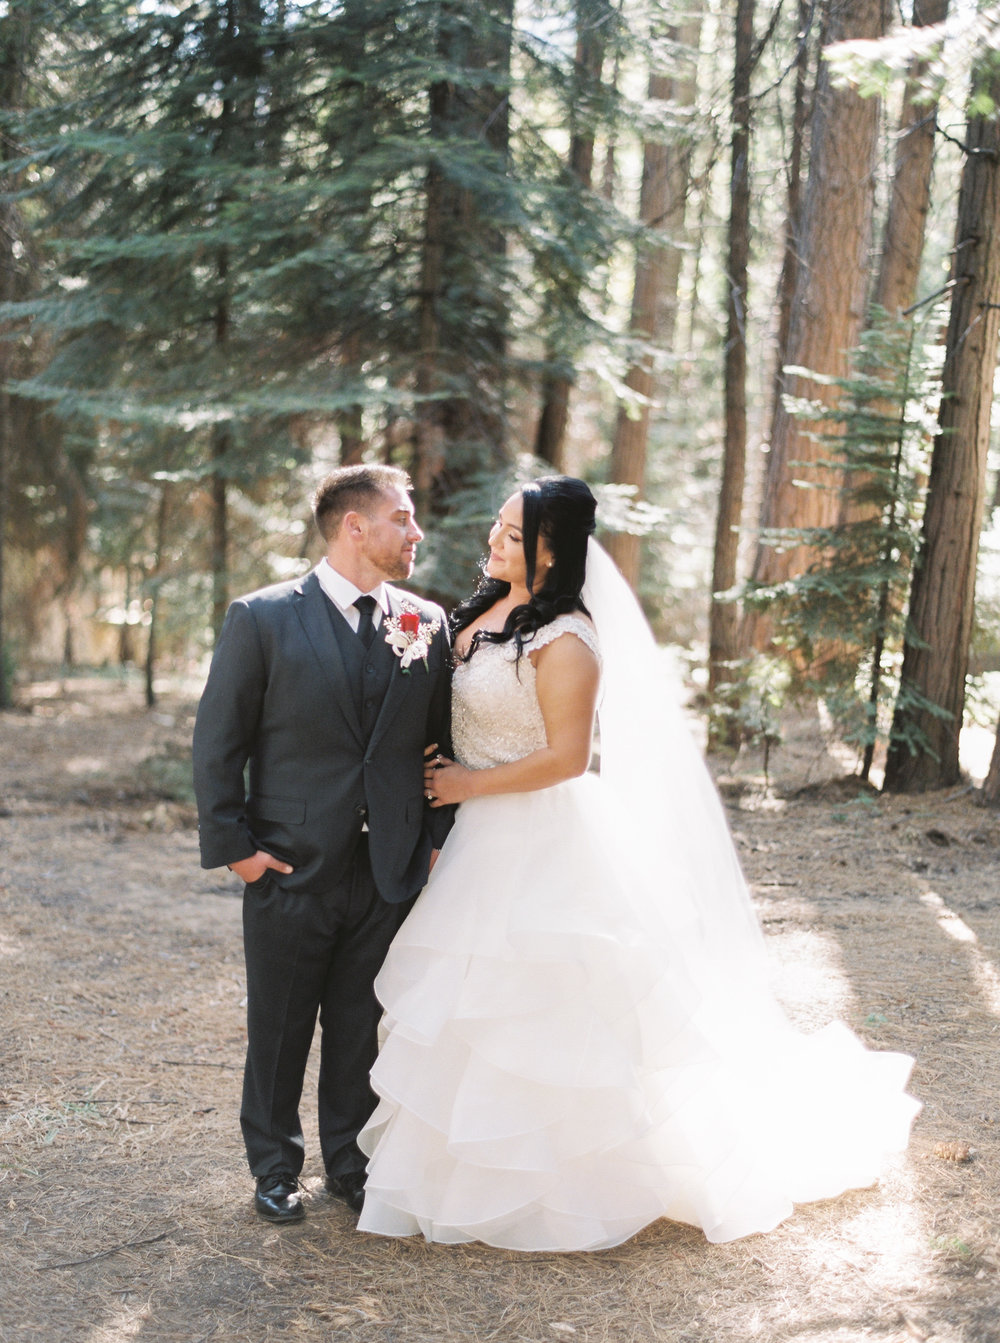 Tenaya-lodge-wedding-at-yosemite-national-park-california-43.jpg